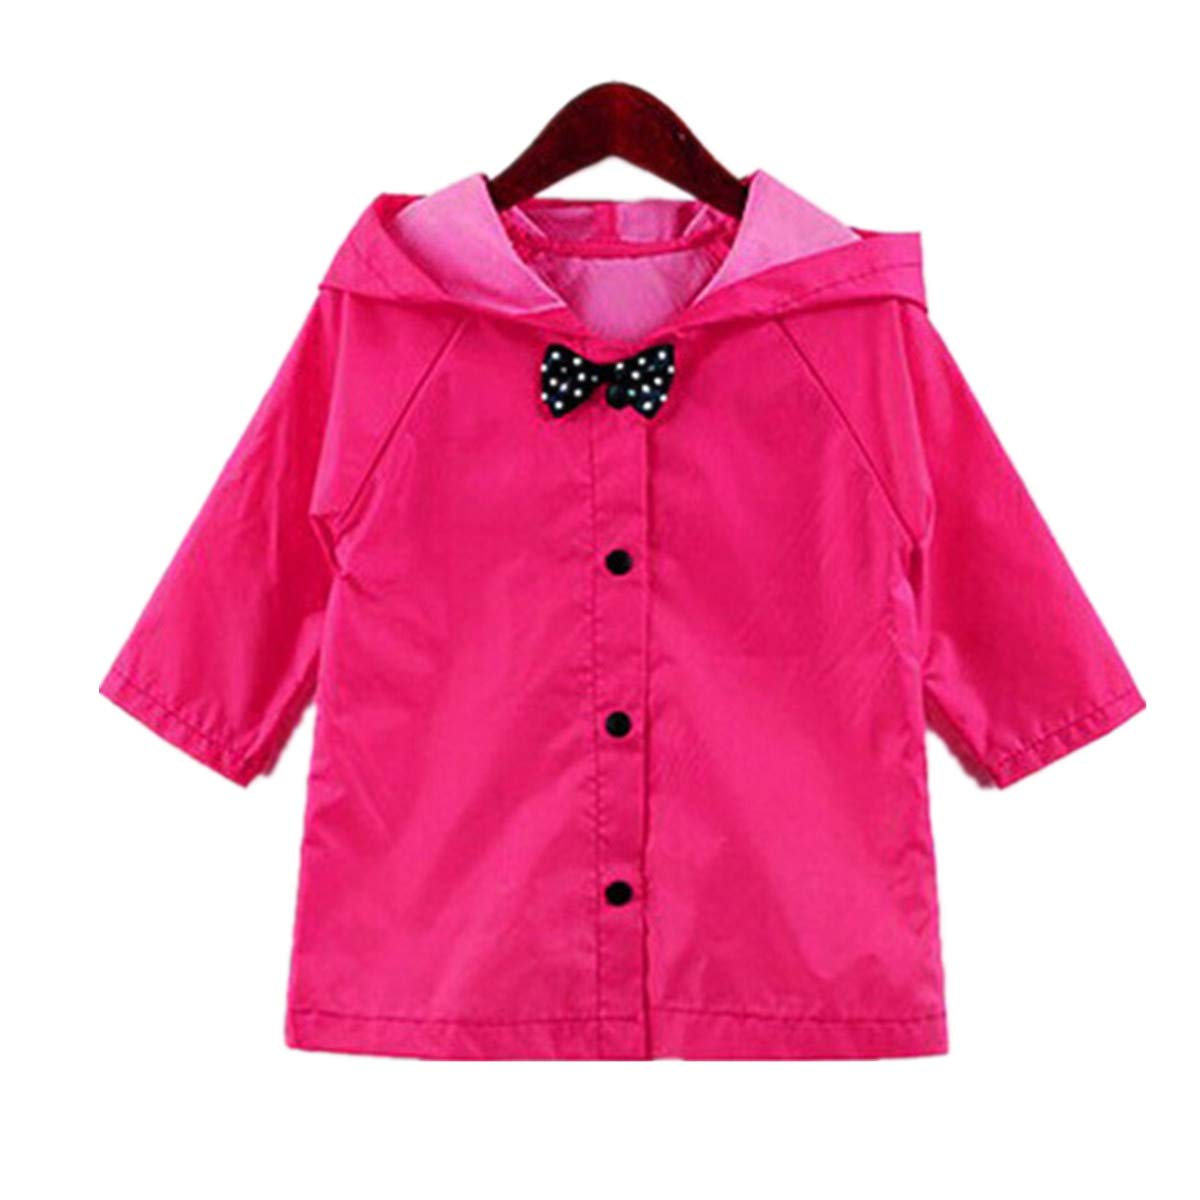 Yiluweinir Kids Raincoat with Bows Girl Boy Waterproof Hood Rain Jacket Outdoor Age 2-10 with Bag HZWS11-1-1